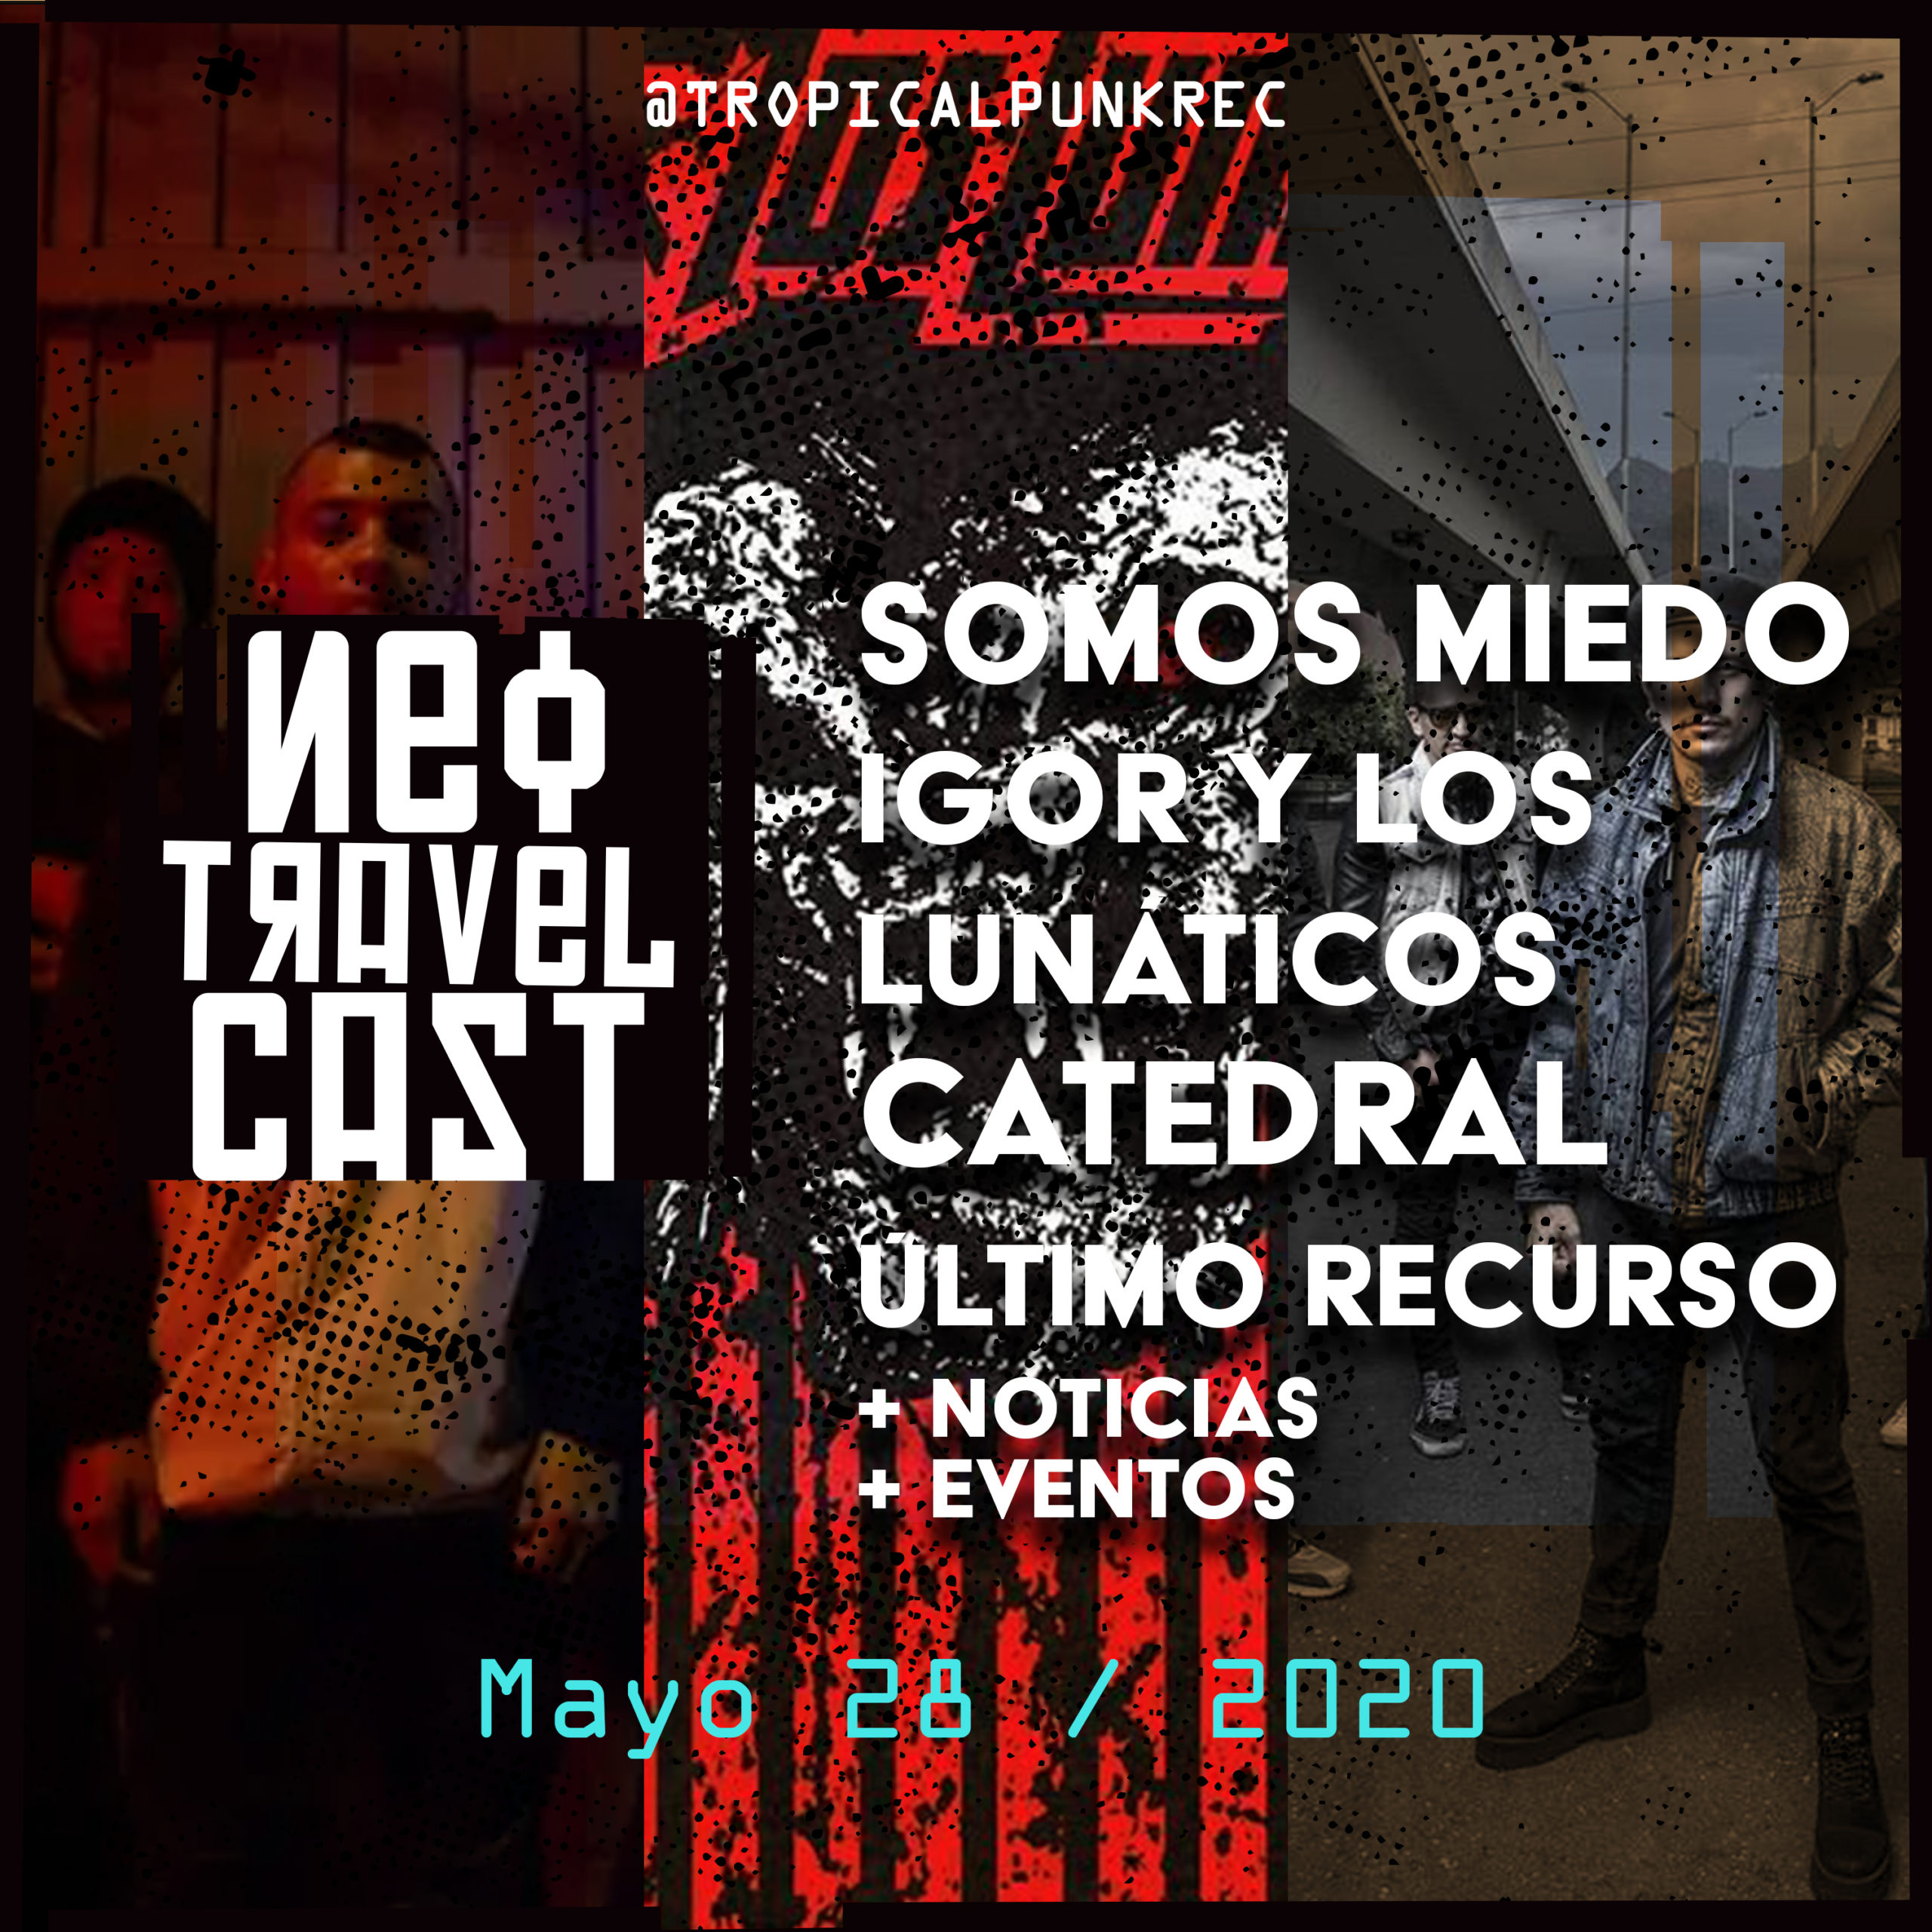 Tropical Punk Records presenta el Neo Travel Cast podcast El Poste con Somos Miedo, Catedral, Igor y los Lunáticos y Ultimo Recurso (Episodio 14)